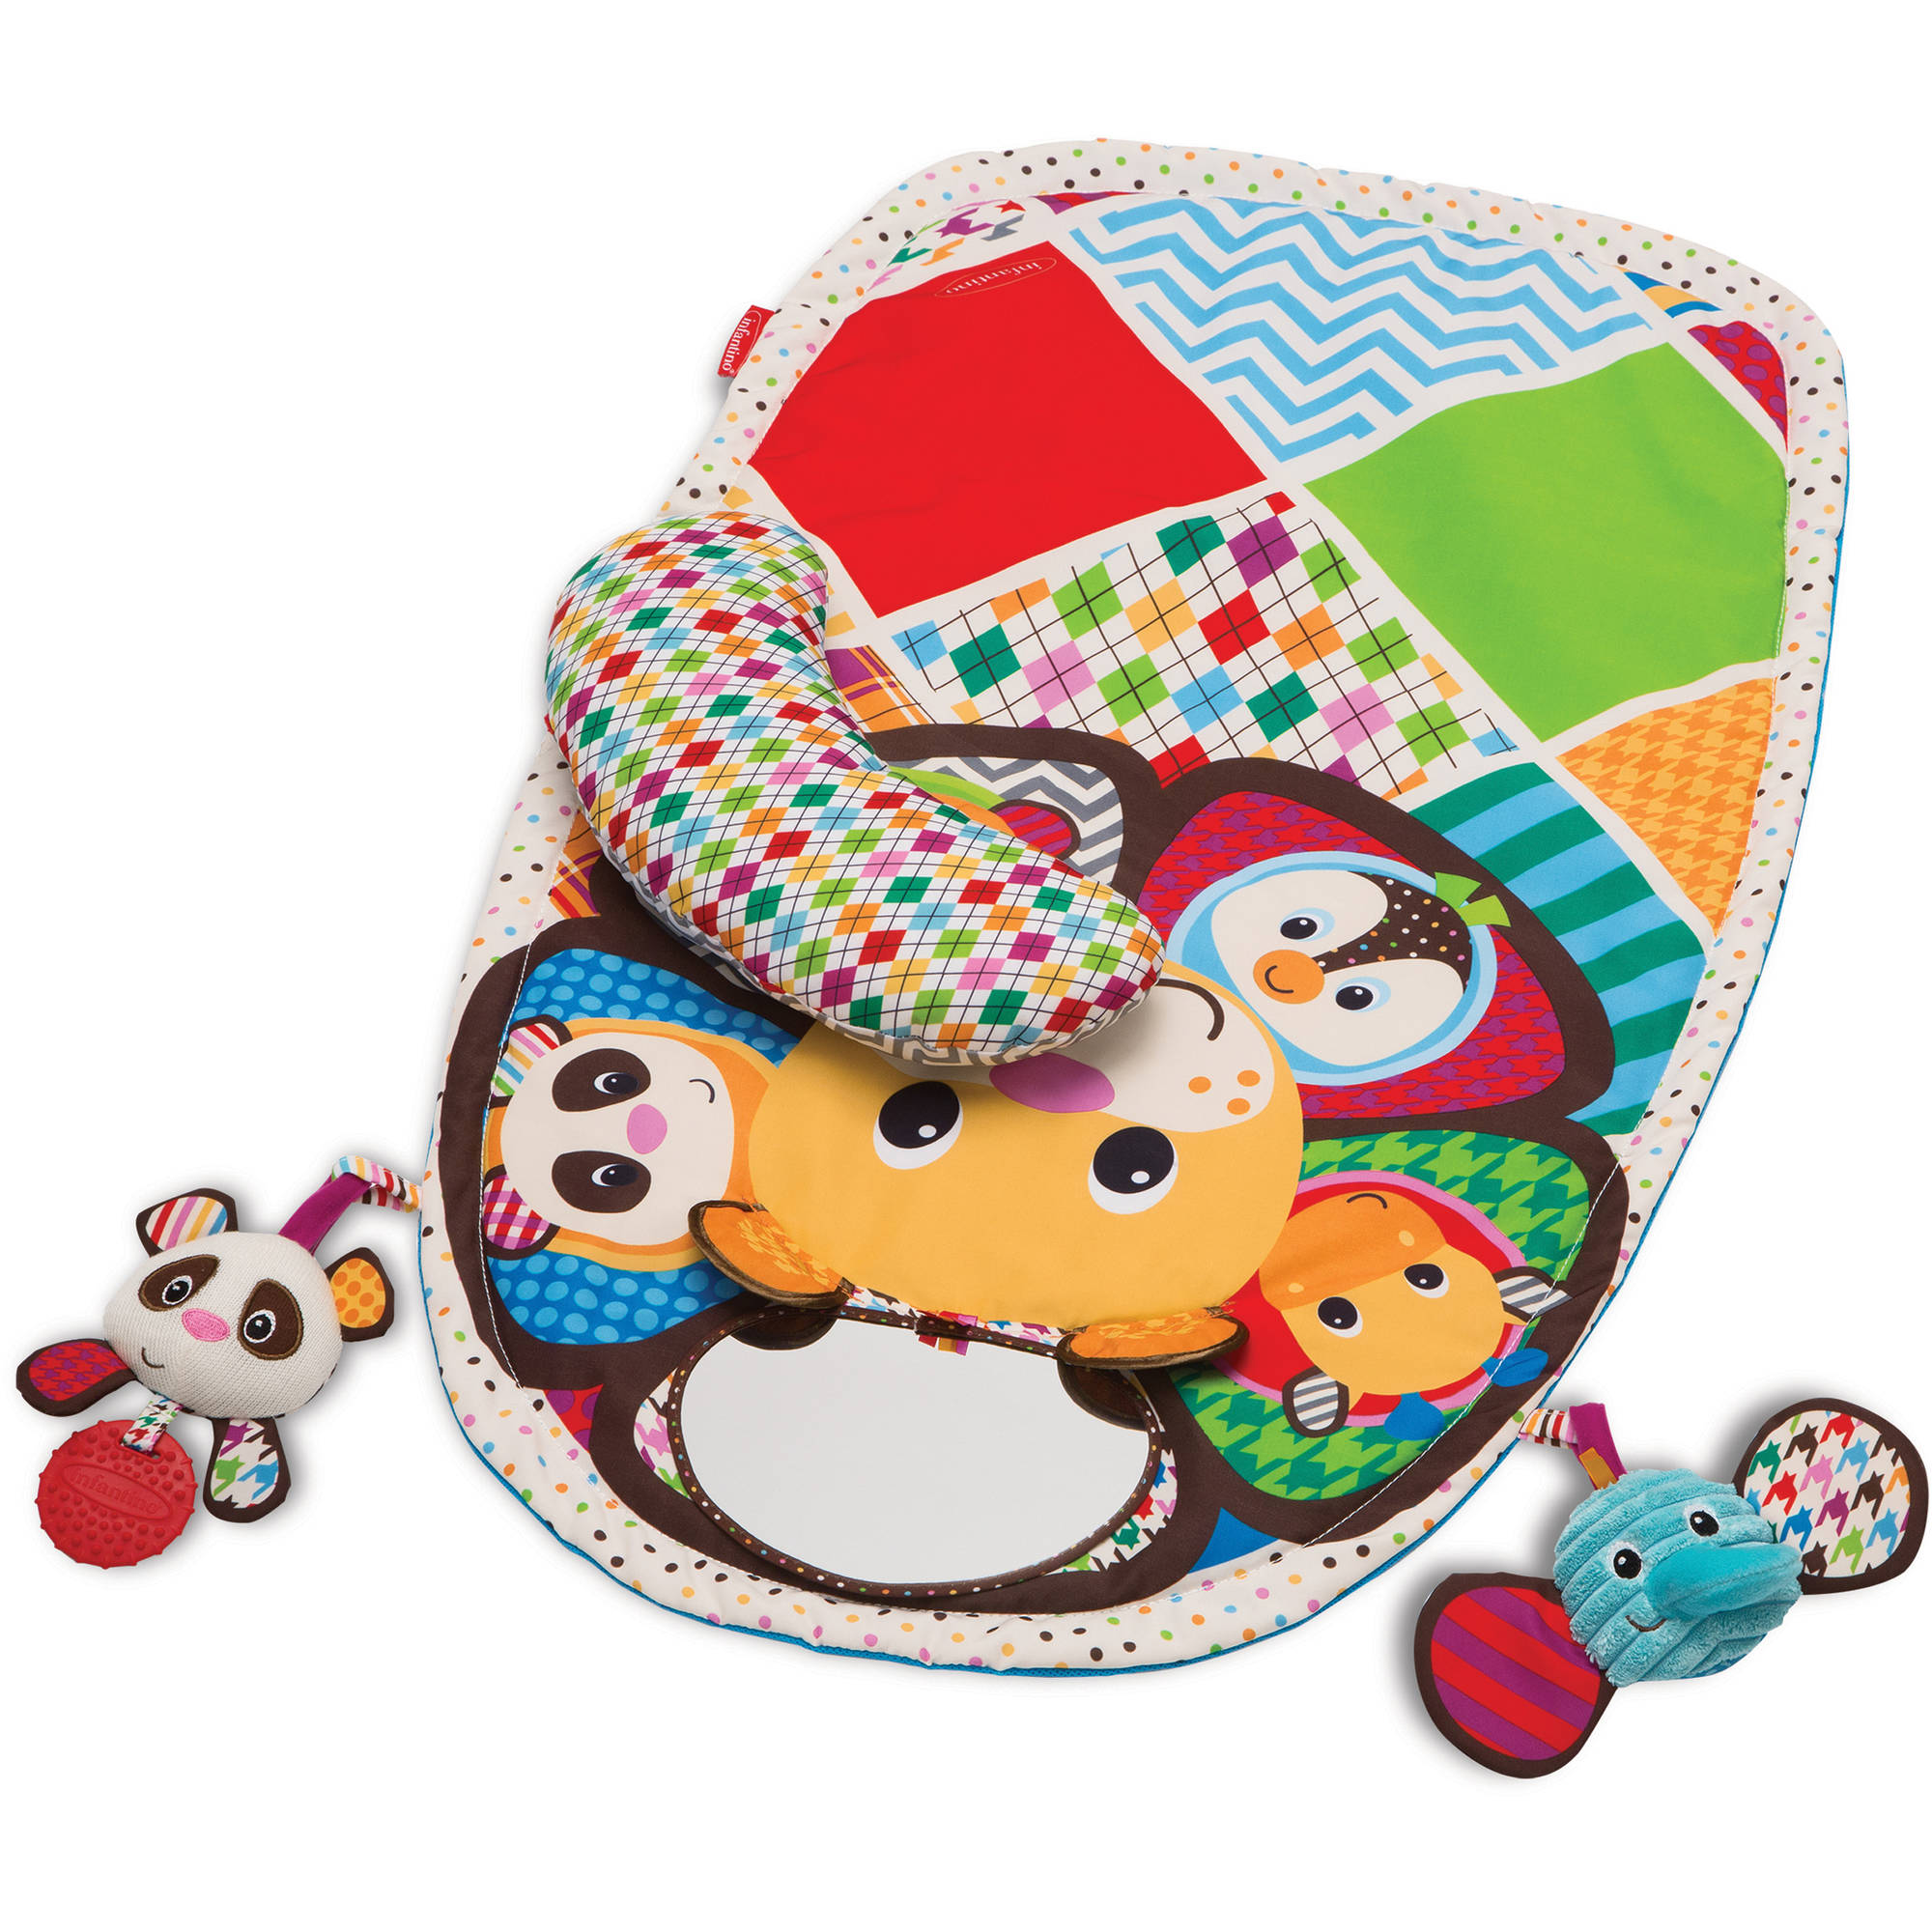 Infantino See Play Go Peek & Play Tummy Time Activity Mat